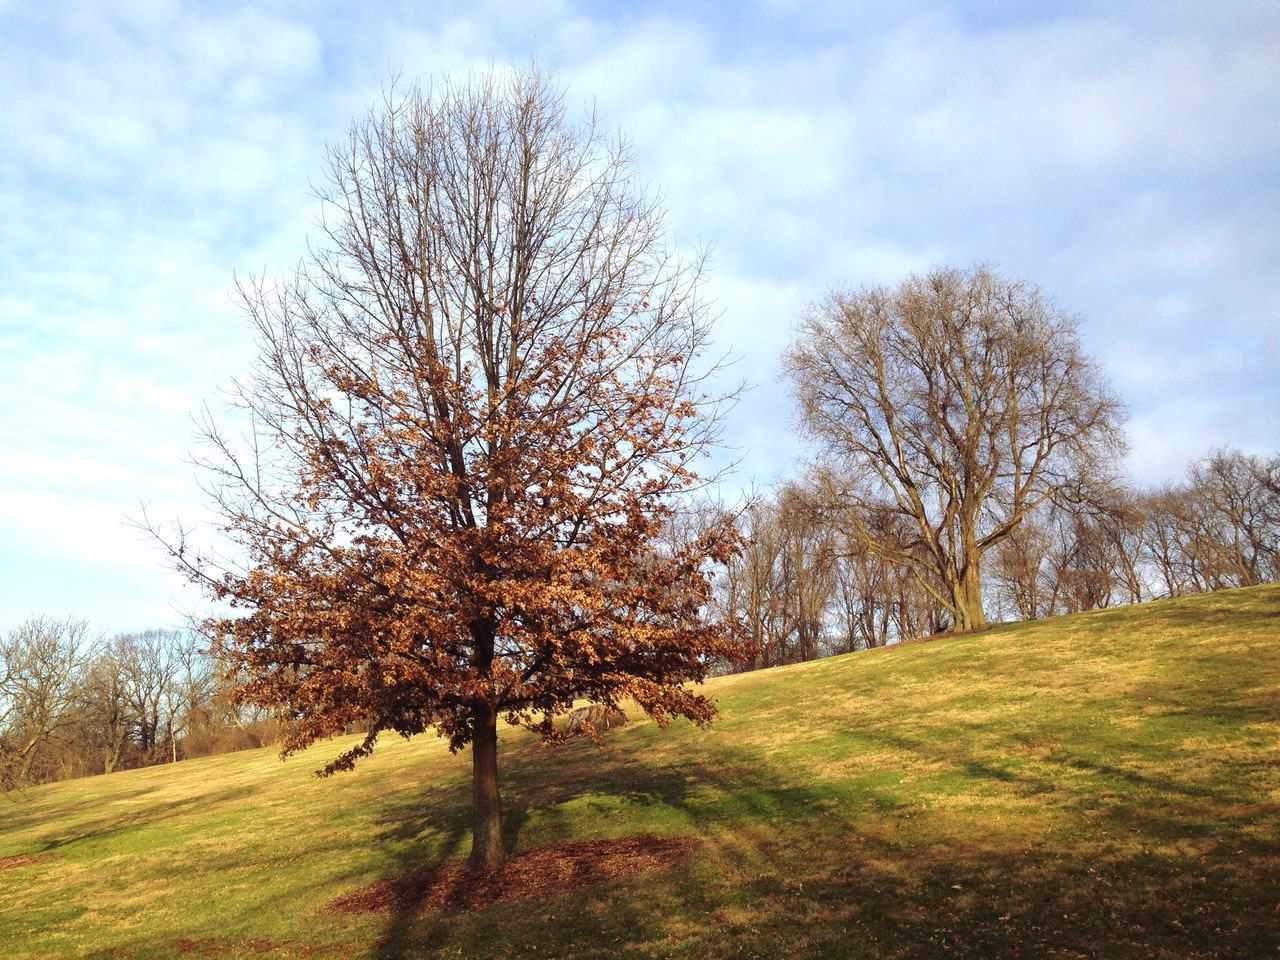 Trees On Grassy Field During Autumn